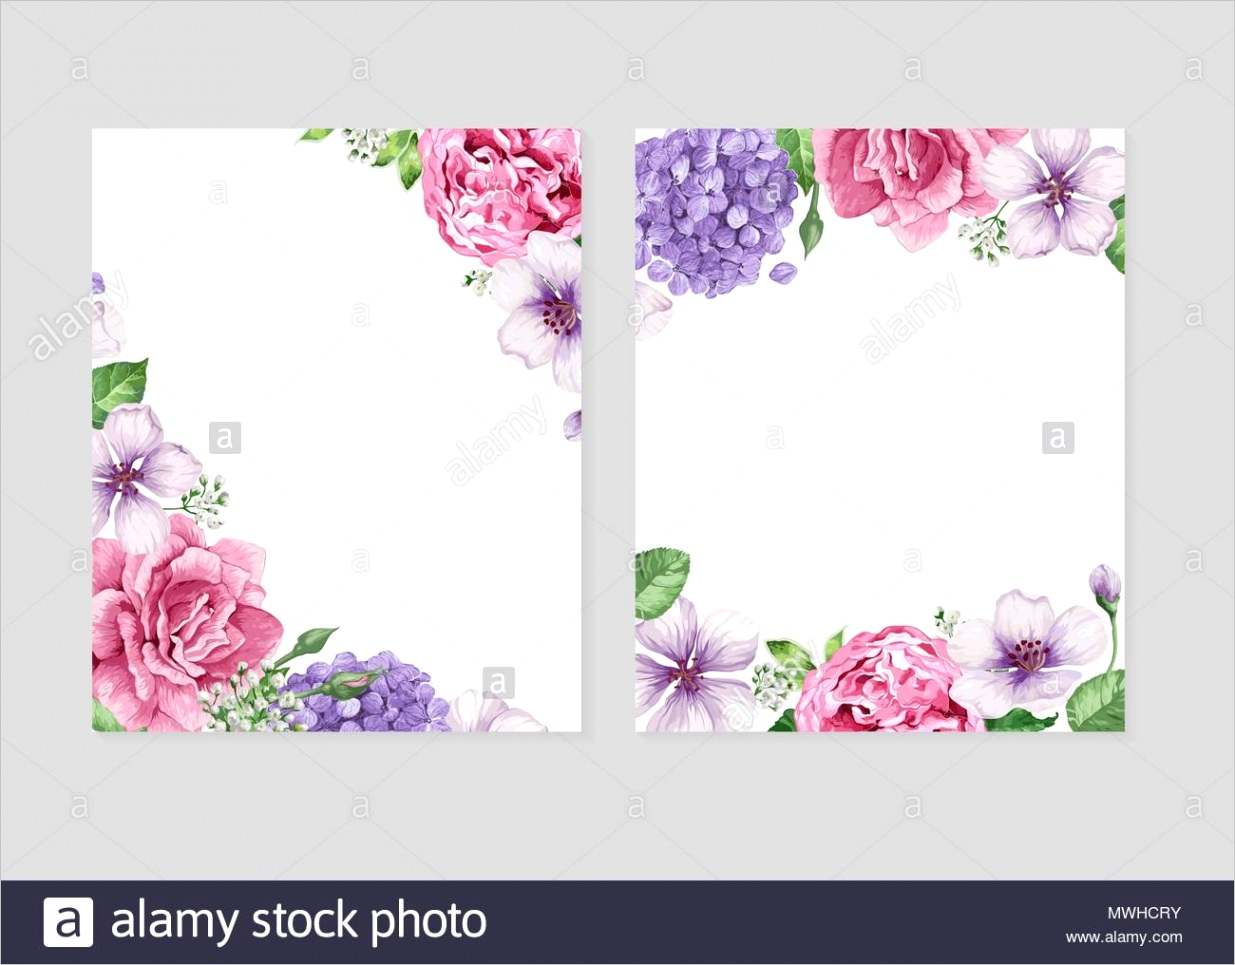 floral blank template set flowers in watercolor style isolated on white background for web banners polygraphy wedding invitation border image ml